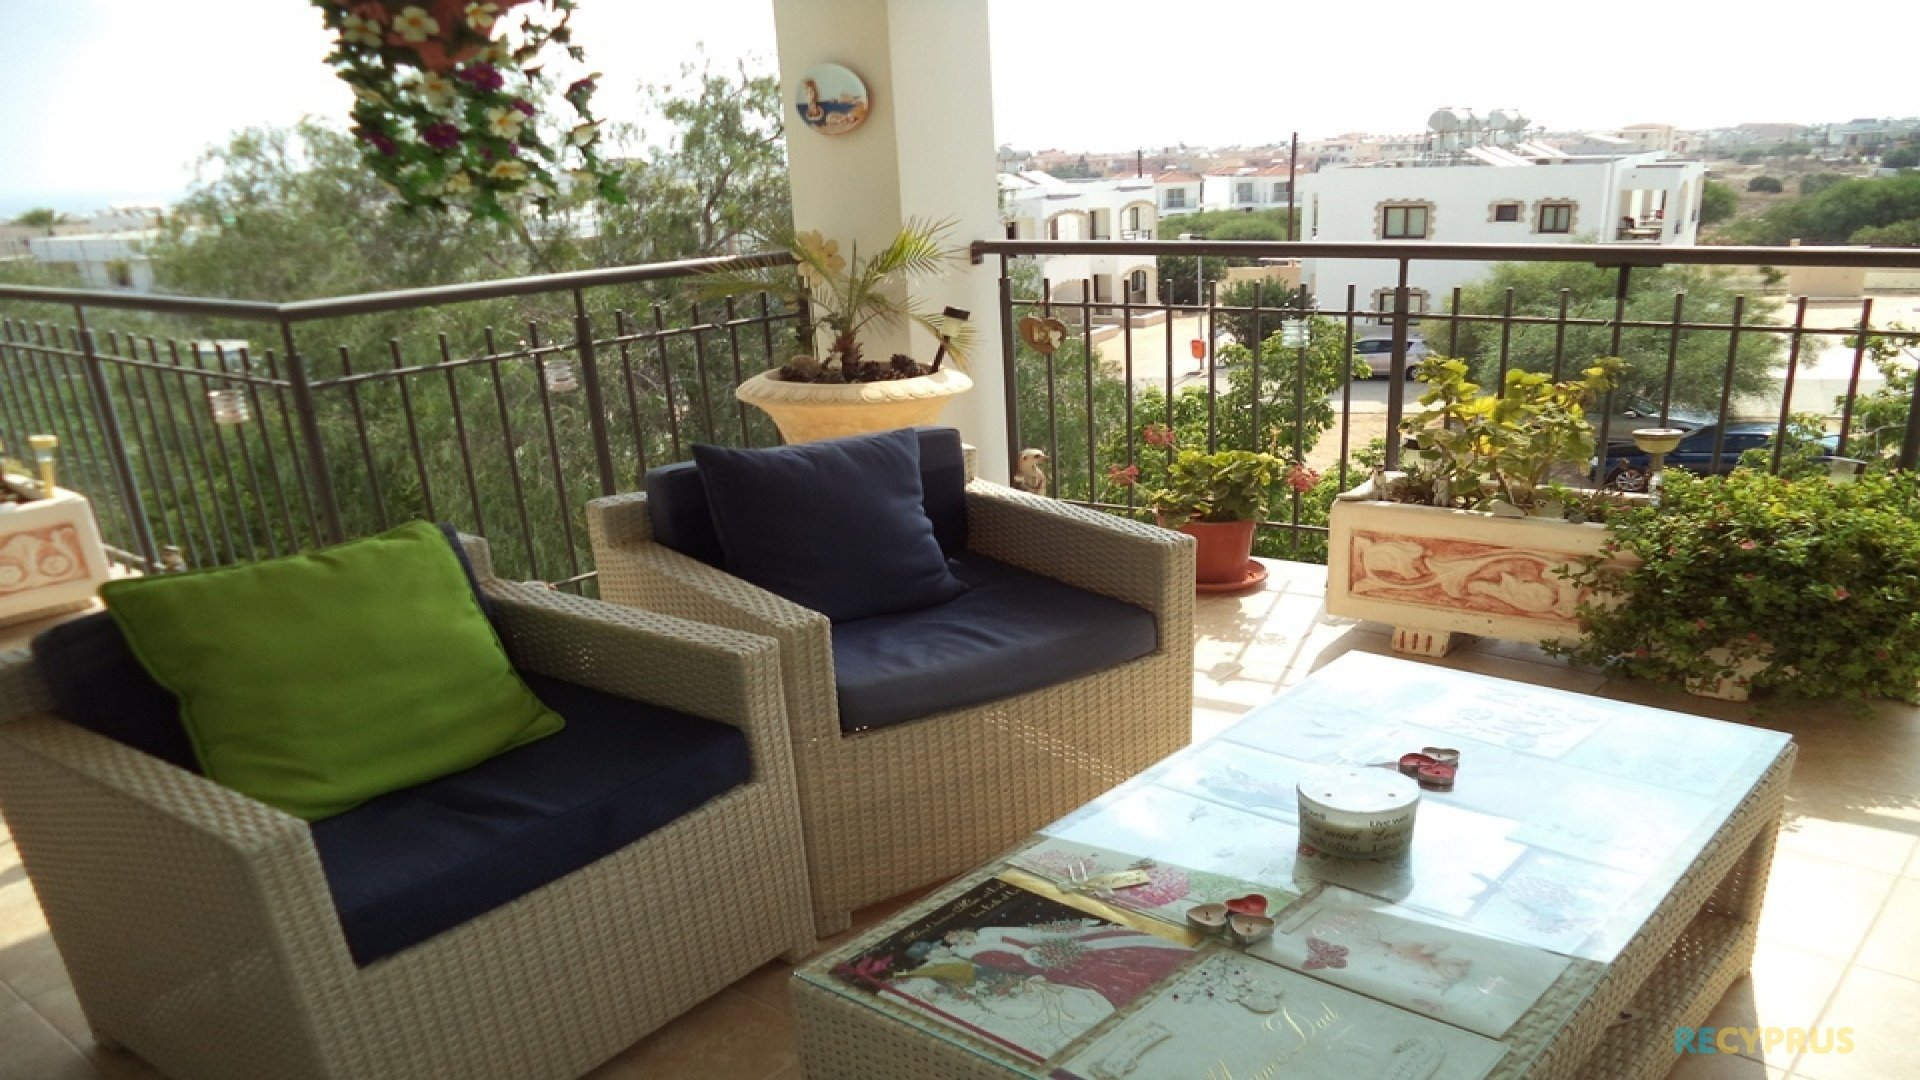 Apartment for sale Kapparis Famagusta Cyprus 14 3463